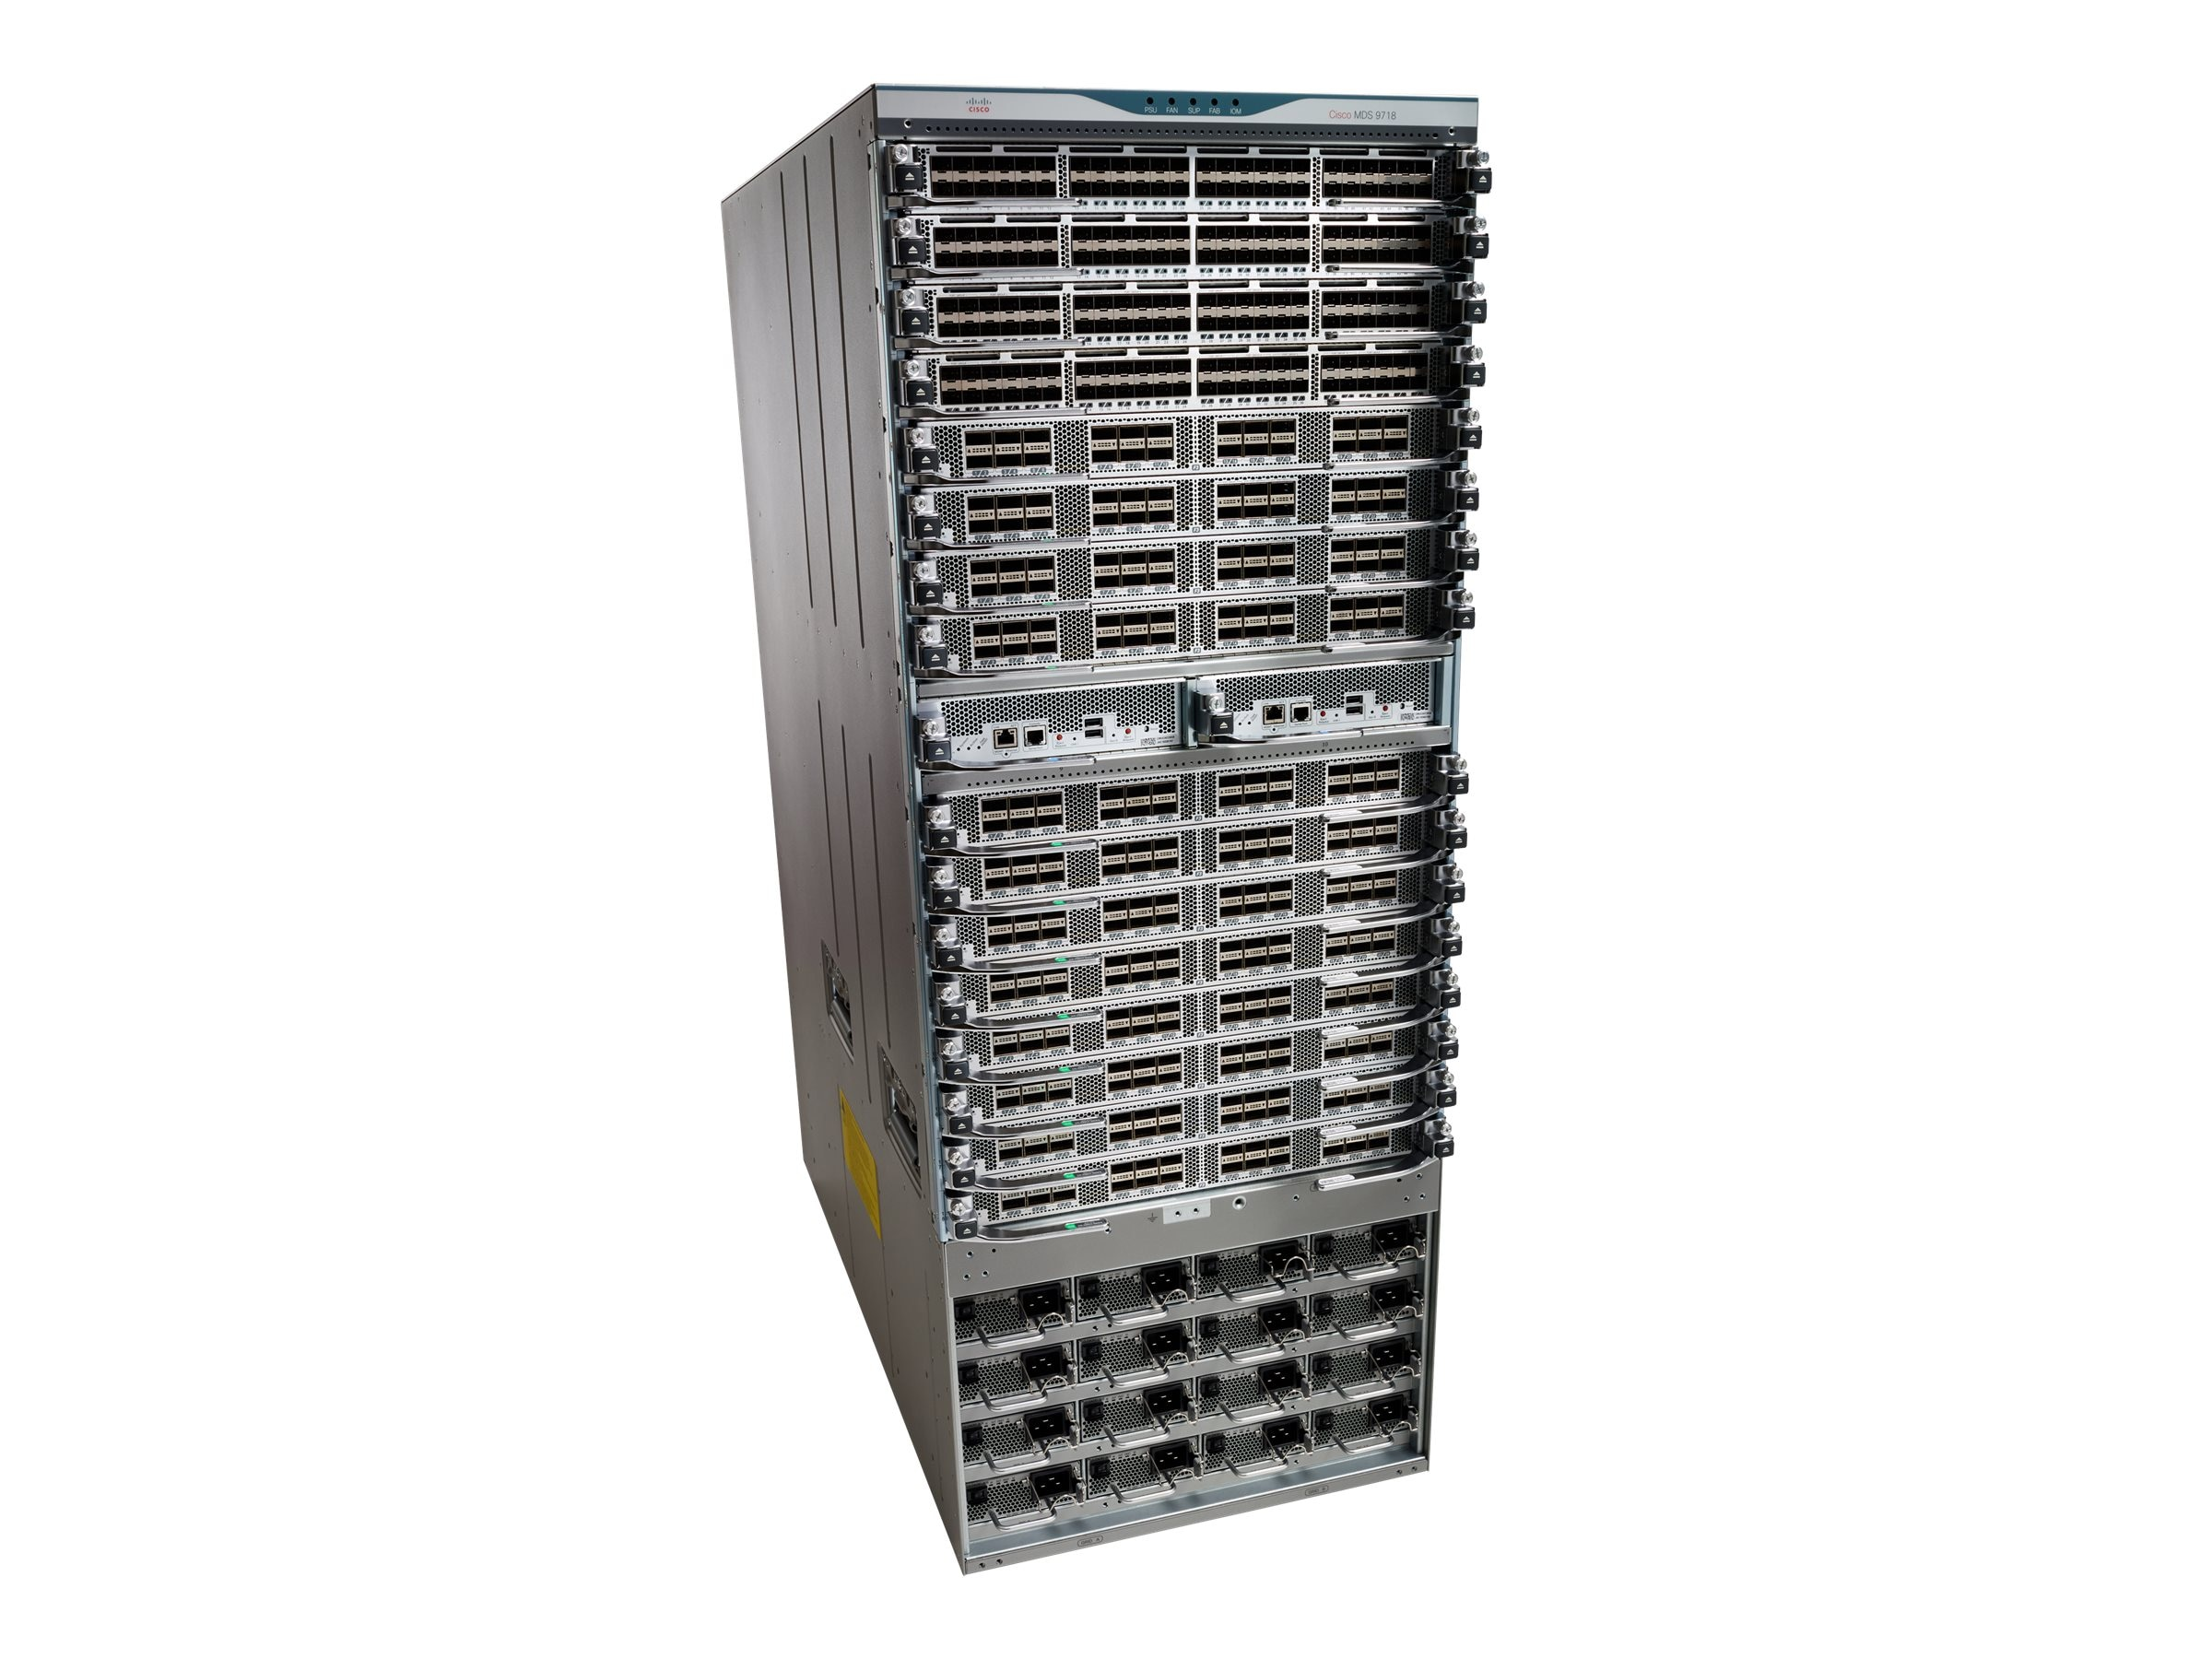 Cisco MDS 9718 Chassis, Fans Inc.